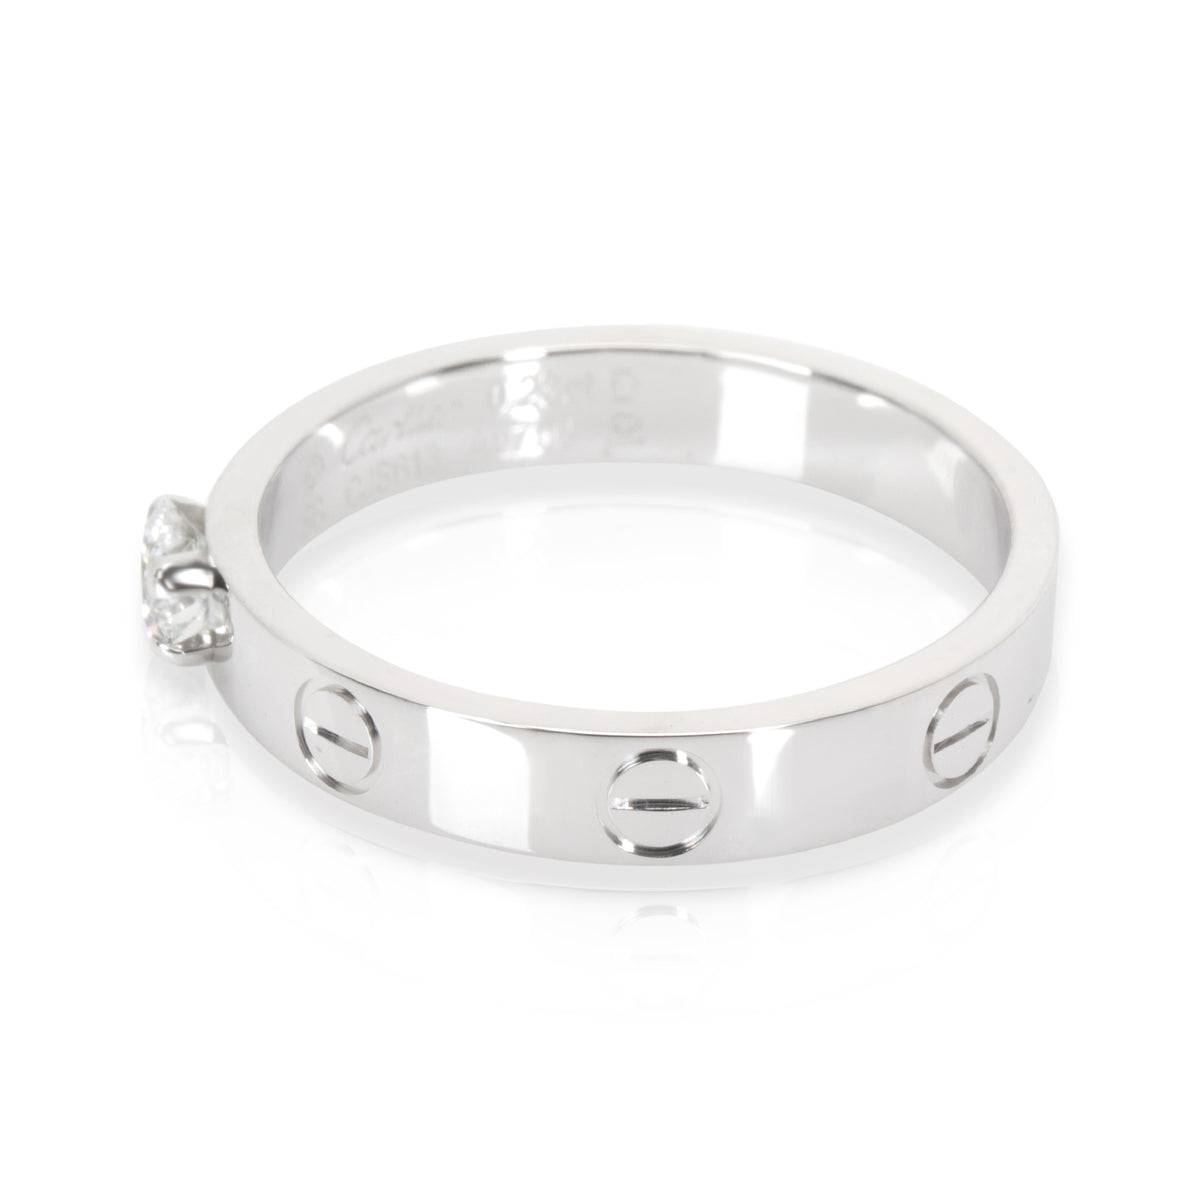 Cartier Love Solitaire Diamond Ring in 18KT White Gold 0.23 CTW